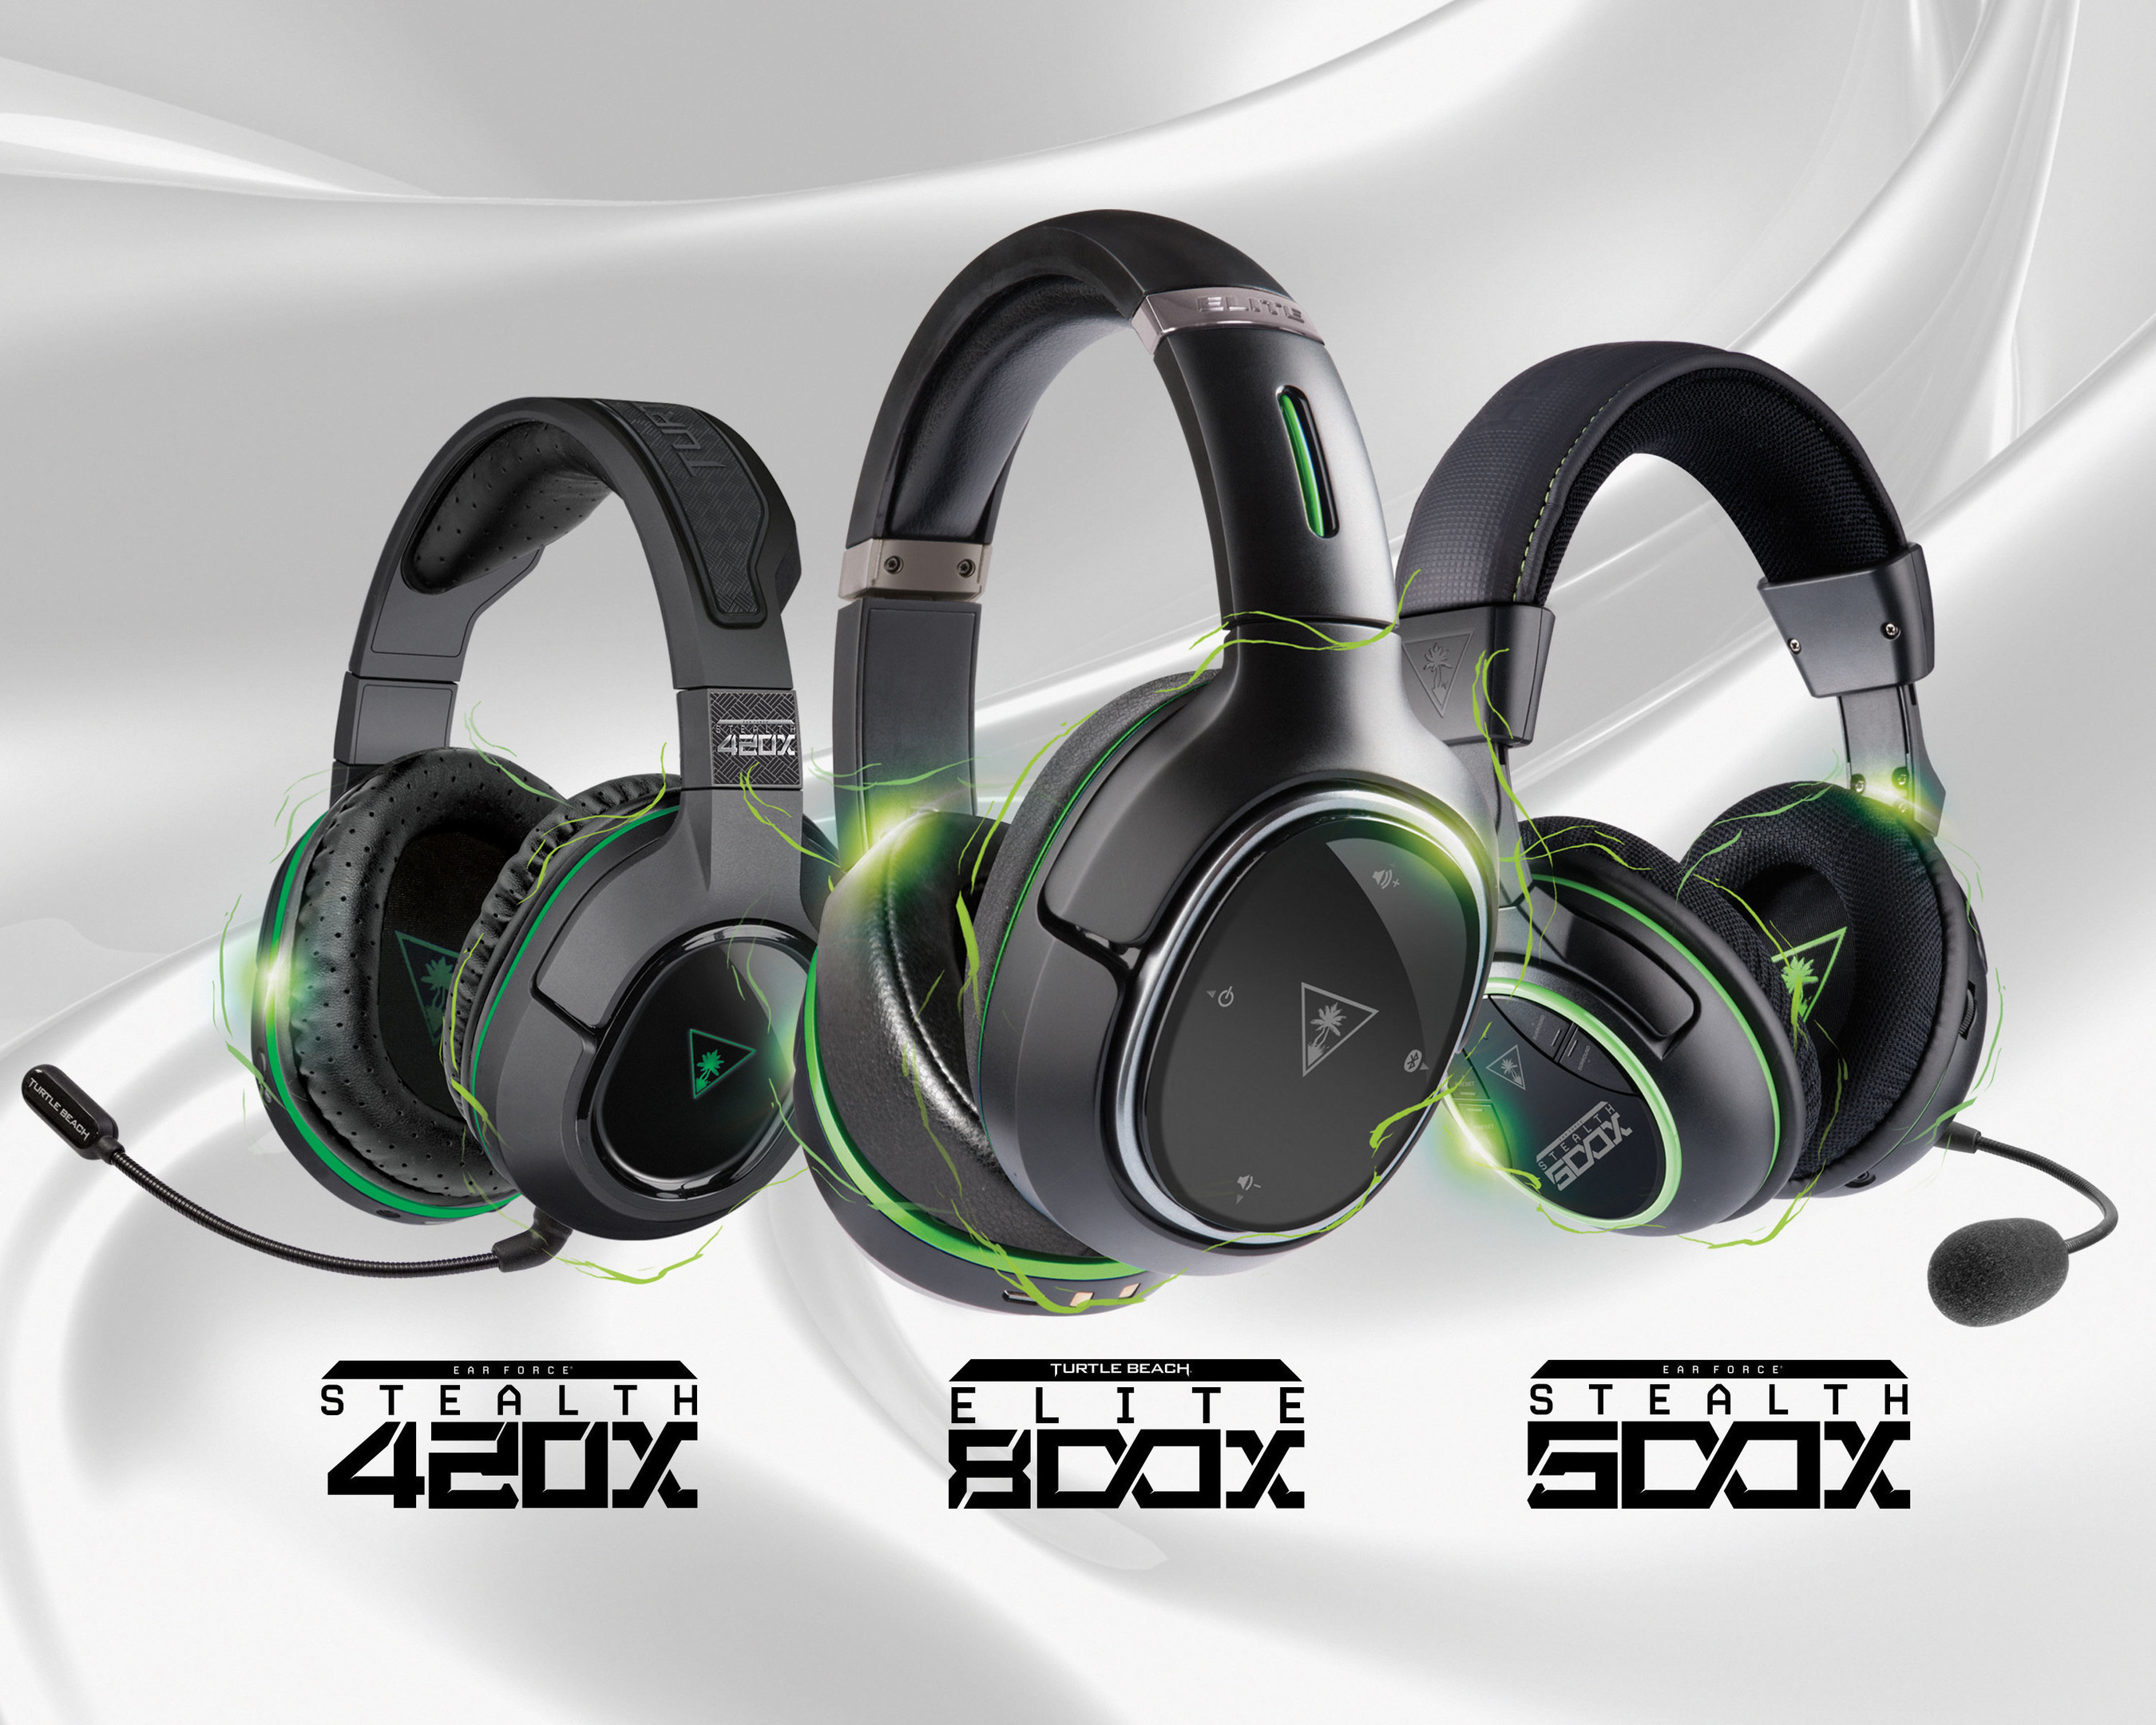 d0dd82c4f59 EAR FORCE Stealth 420X; Elite 800X; Stealth 500X EAR FORCE Stealth 450  Wireless Surround Sound PC Gaming Headset ...